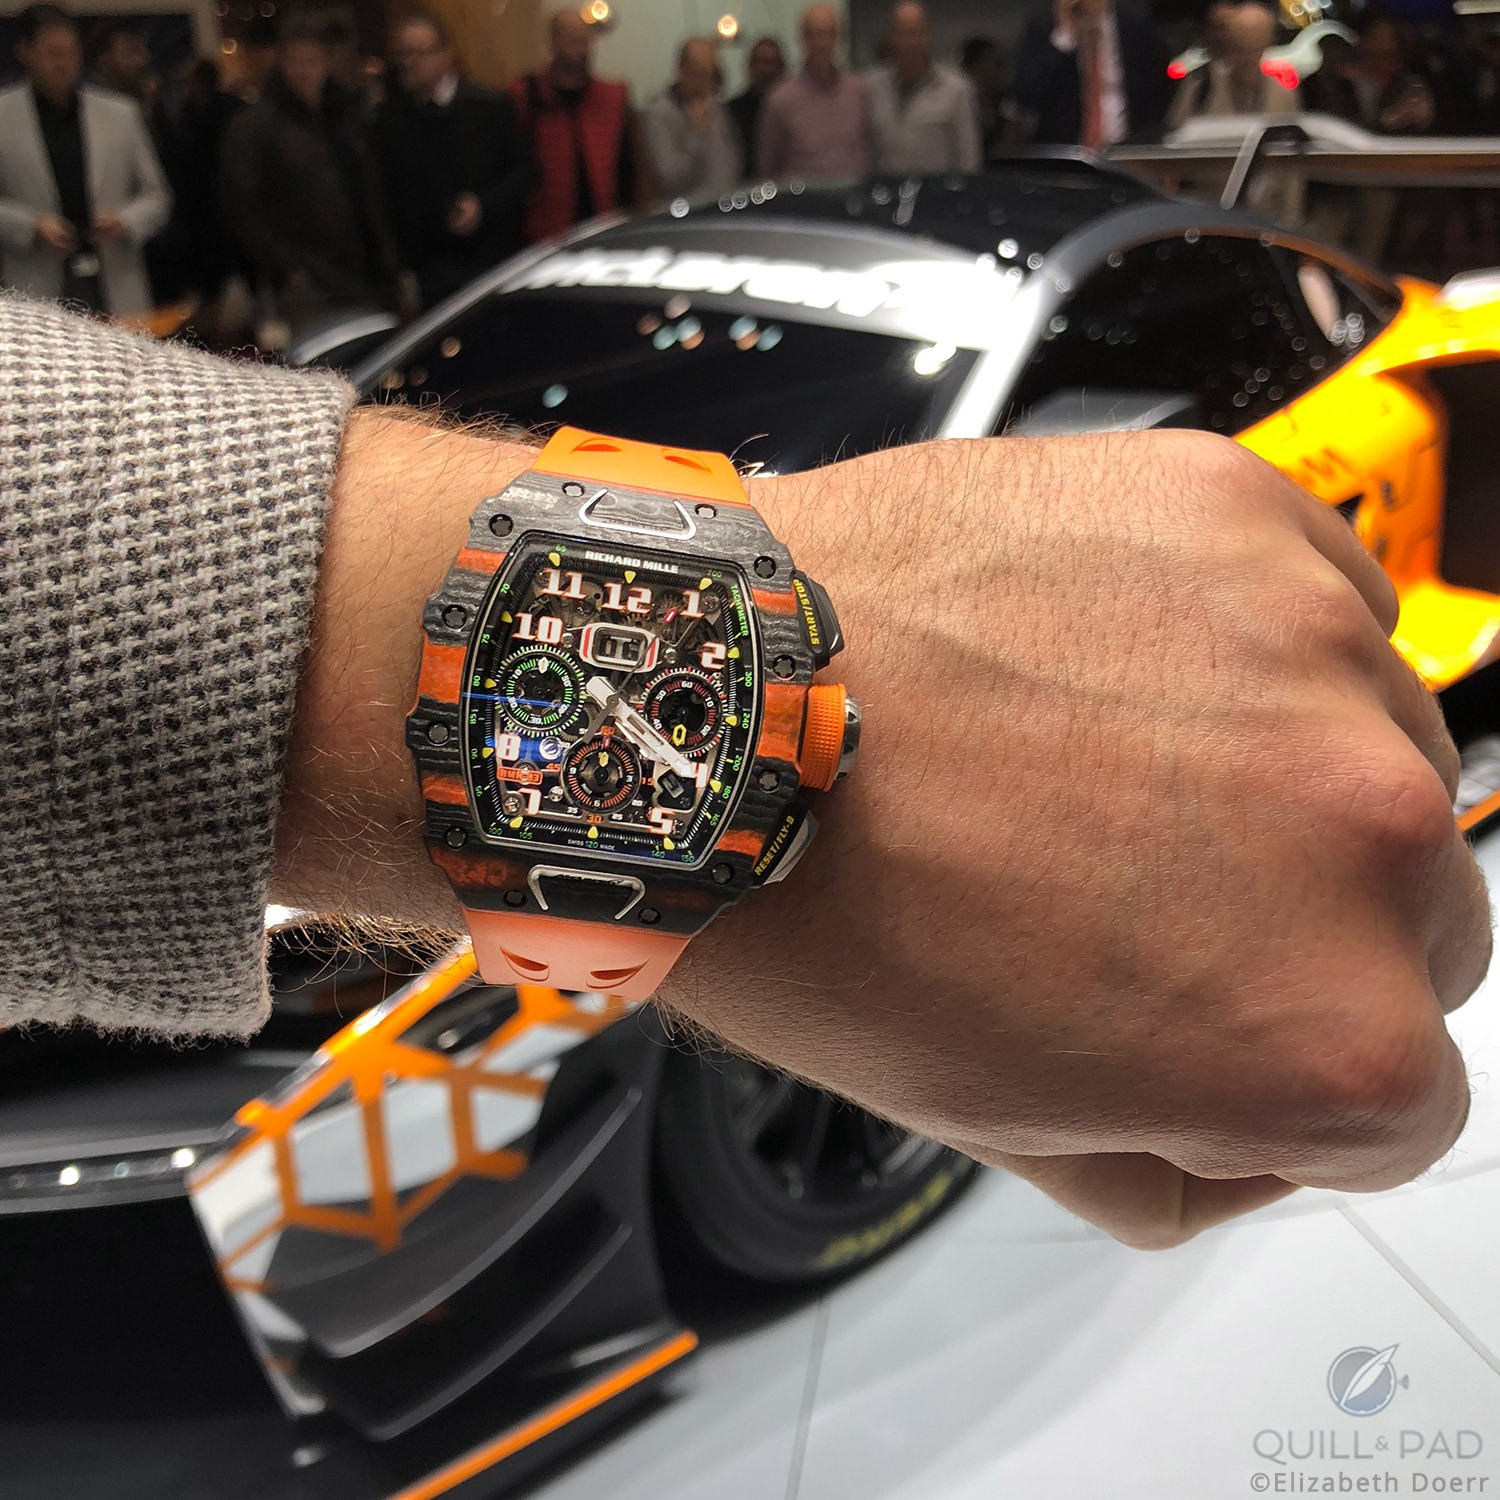 Richard Mille RM-11-03 McLaren Automatic Flyback Chronograph in front of the McLaren Senna GTR Concept at the 2018 Geneva Motor Show